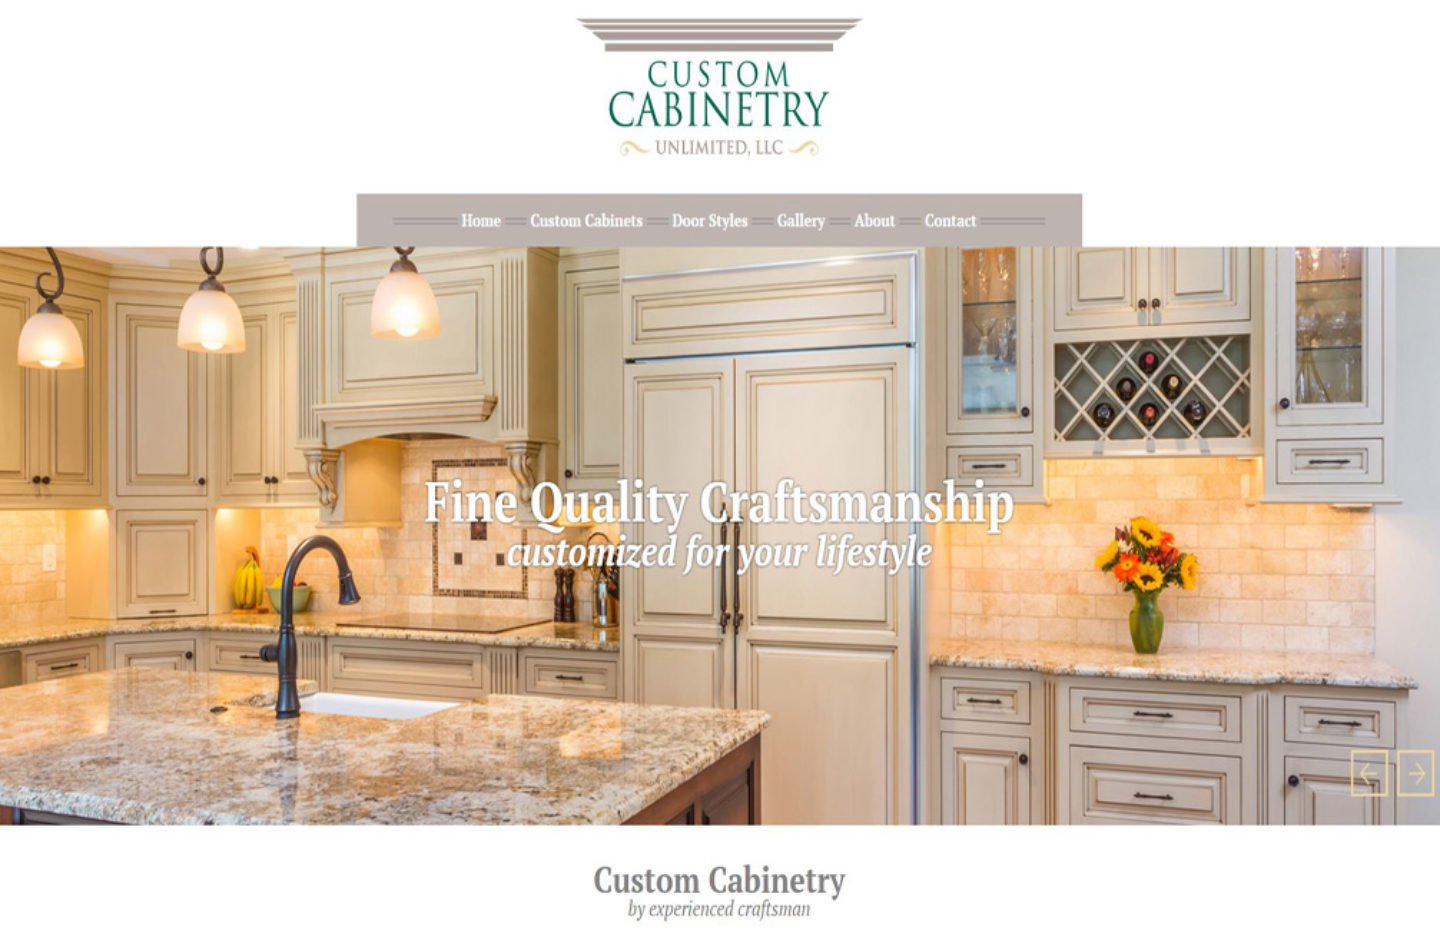 Custom Cabinetry Unlimited